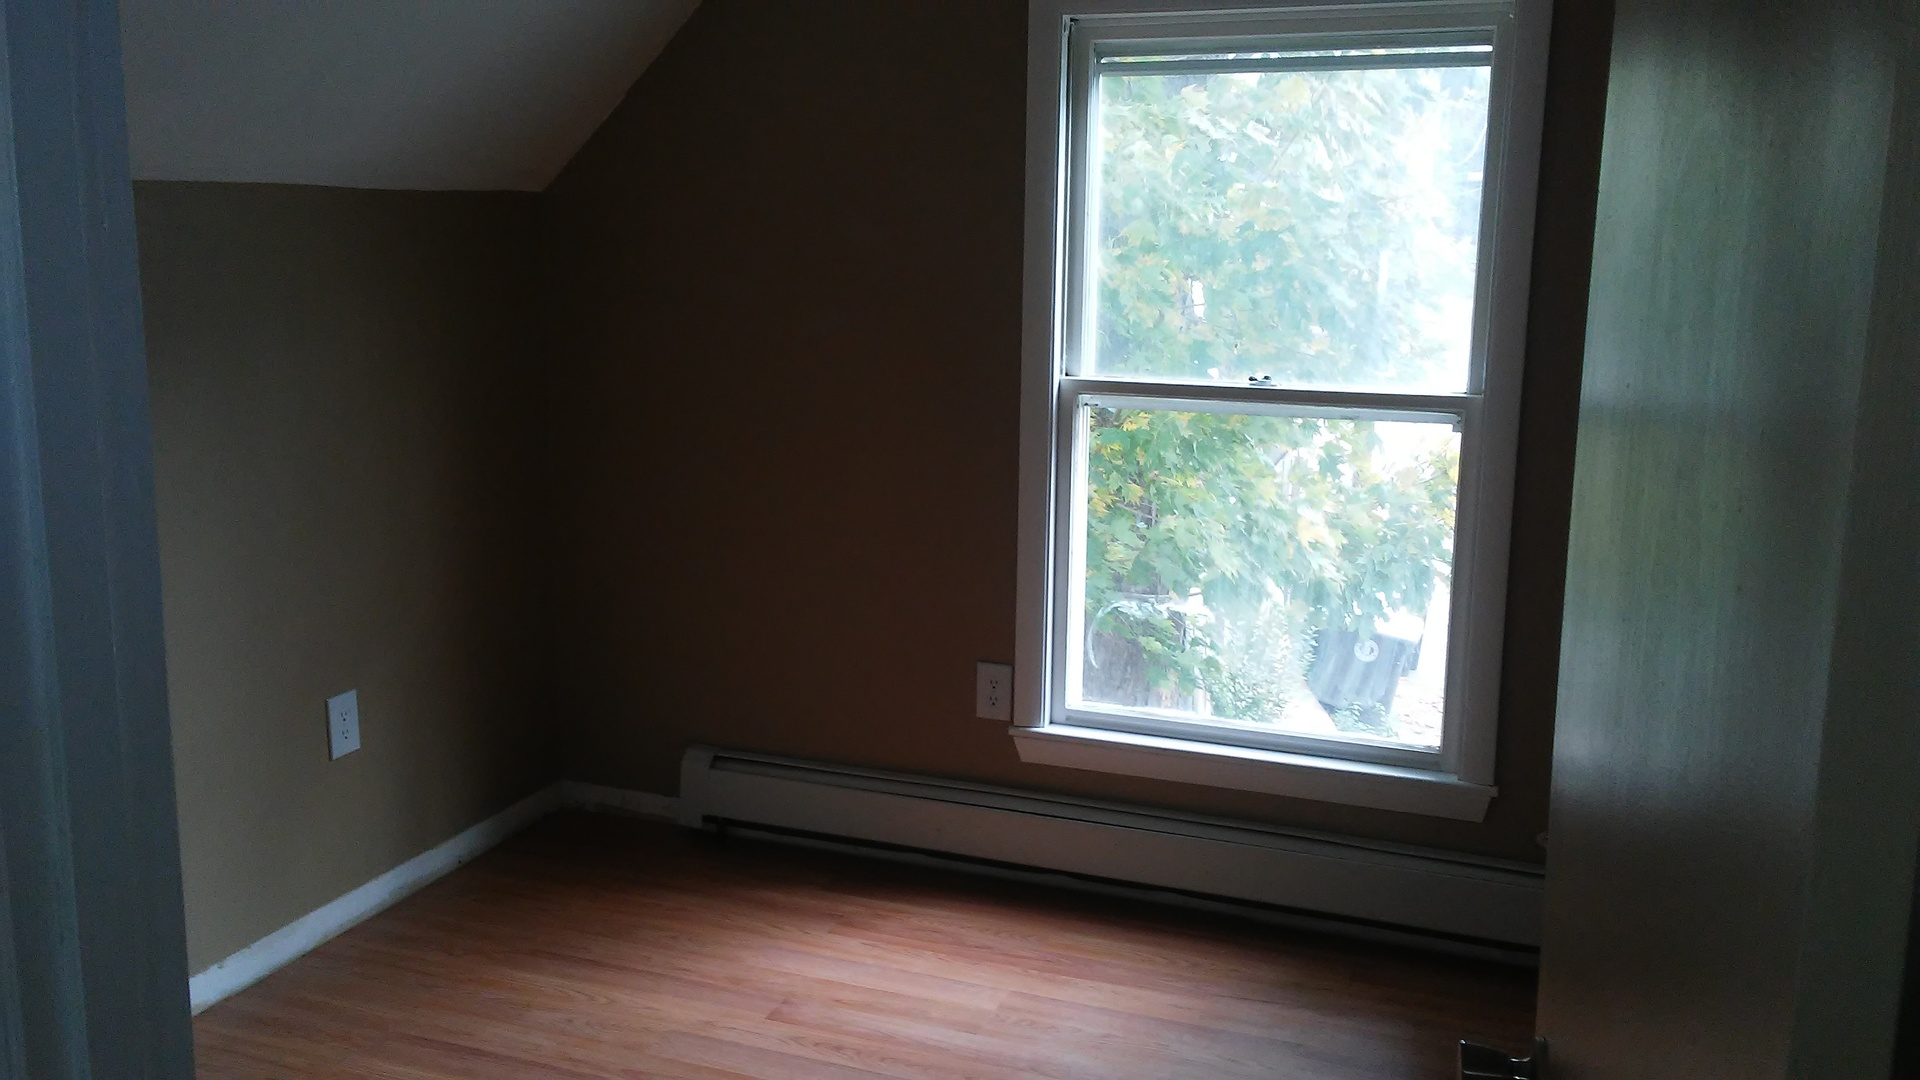 House for Rent in Franklin